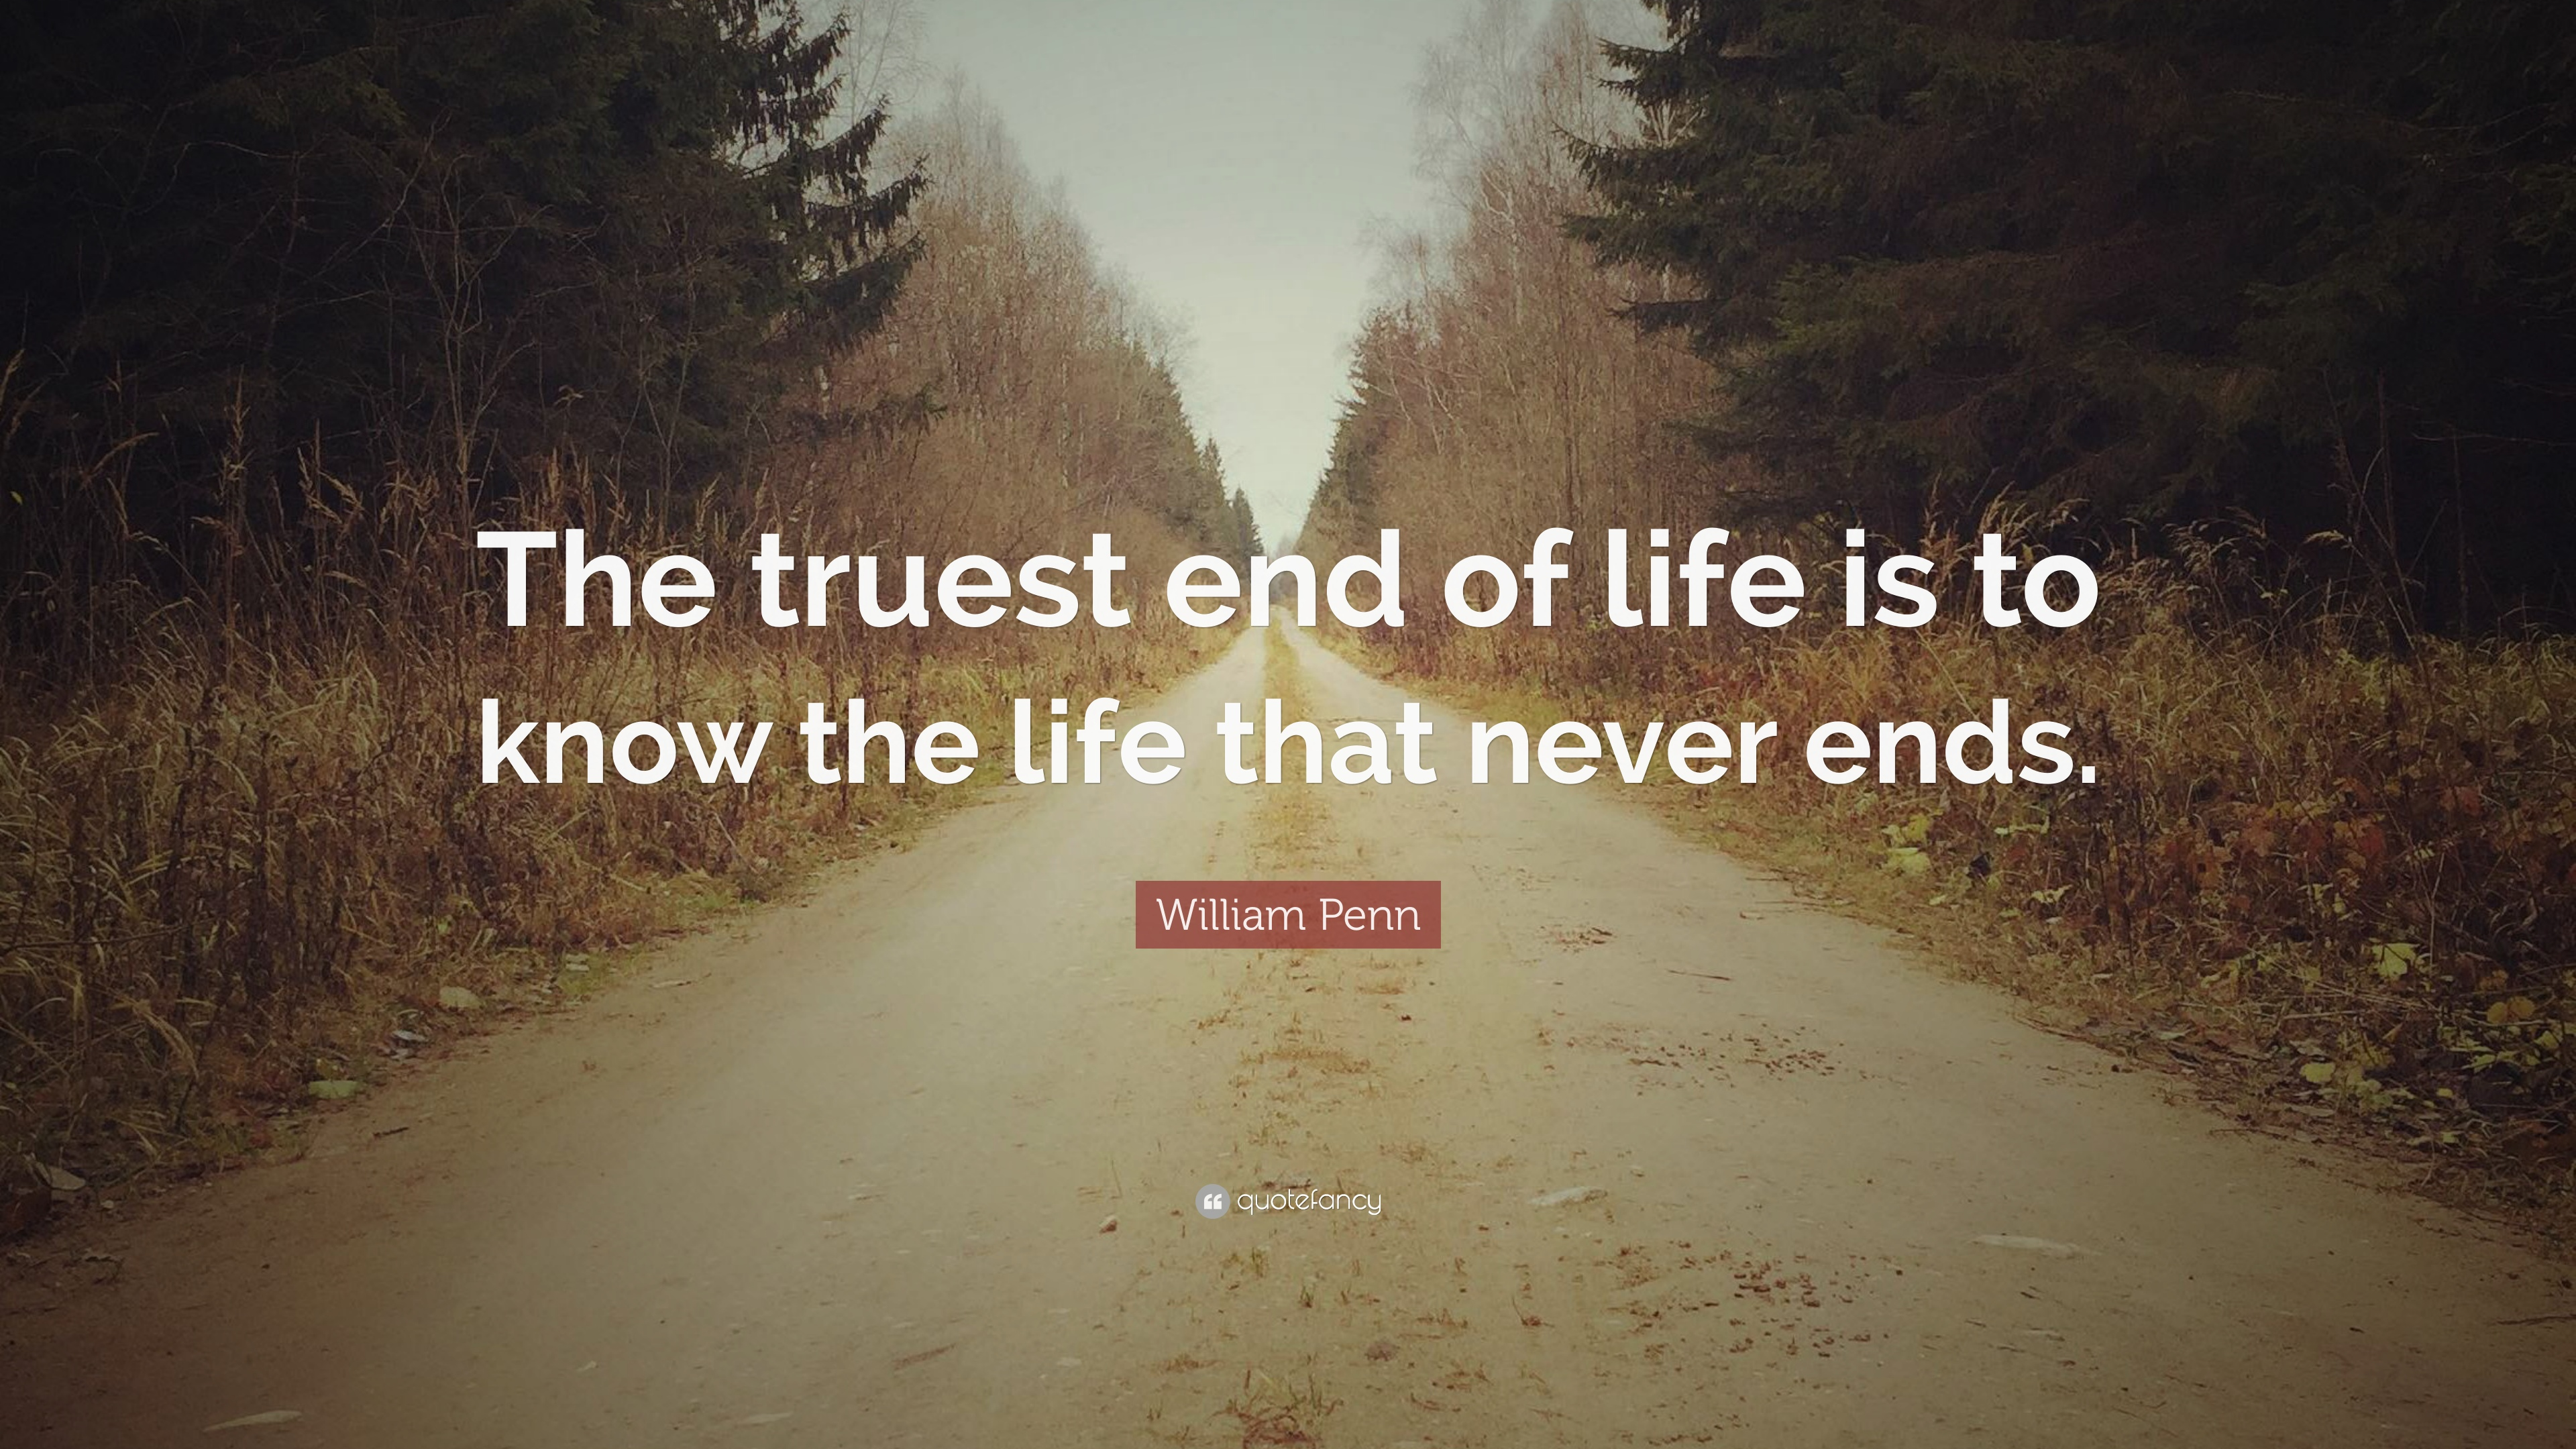 Charming William Penn Quote: U201cThe Truest End Of Life Is To Know The Life That